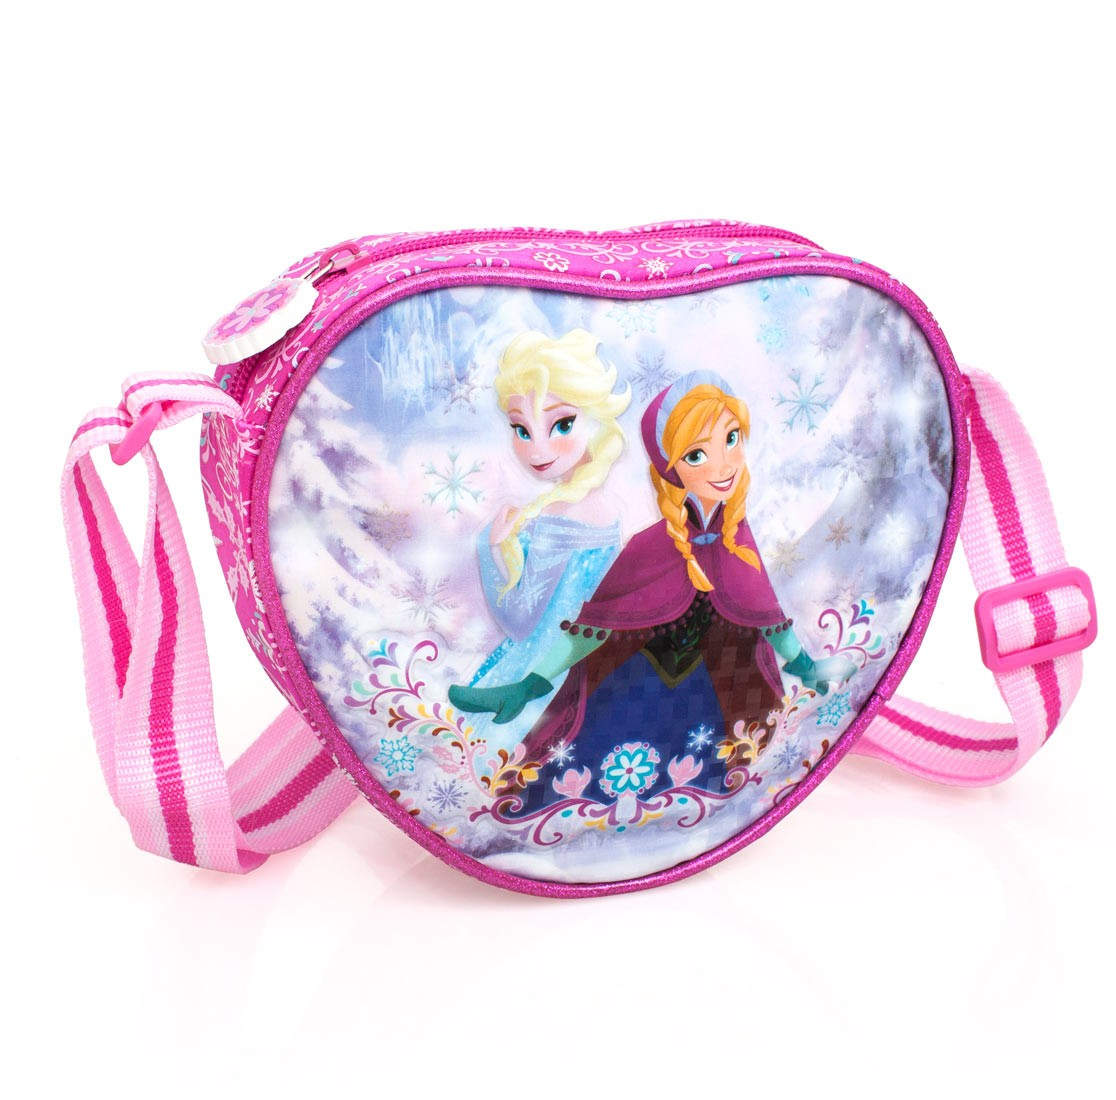 Premium Disney Frozen Heart Shaped Shoulder Bag – image 1